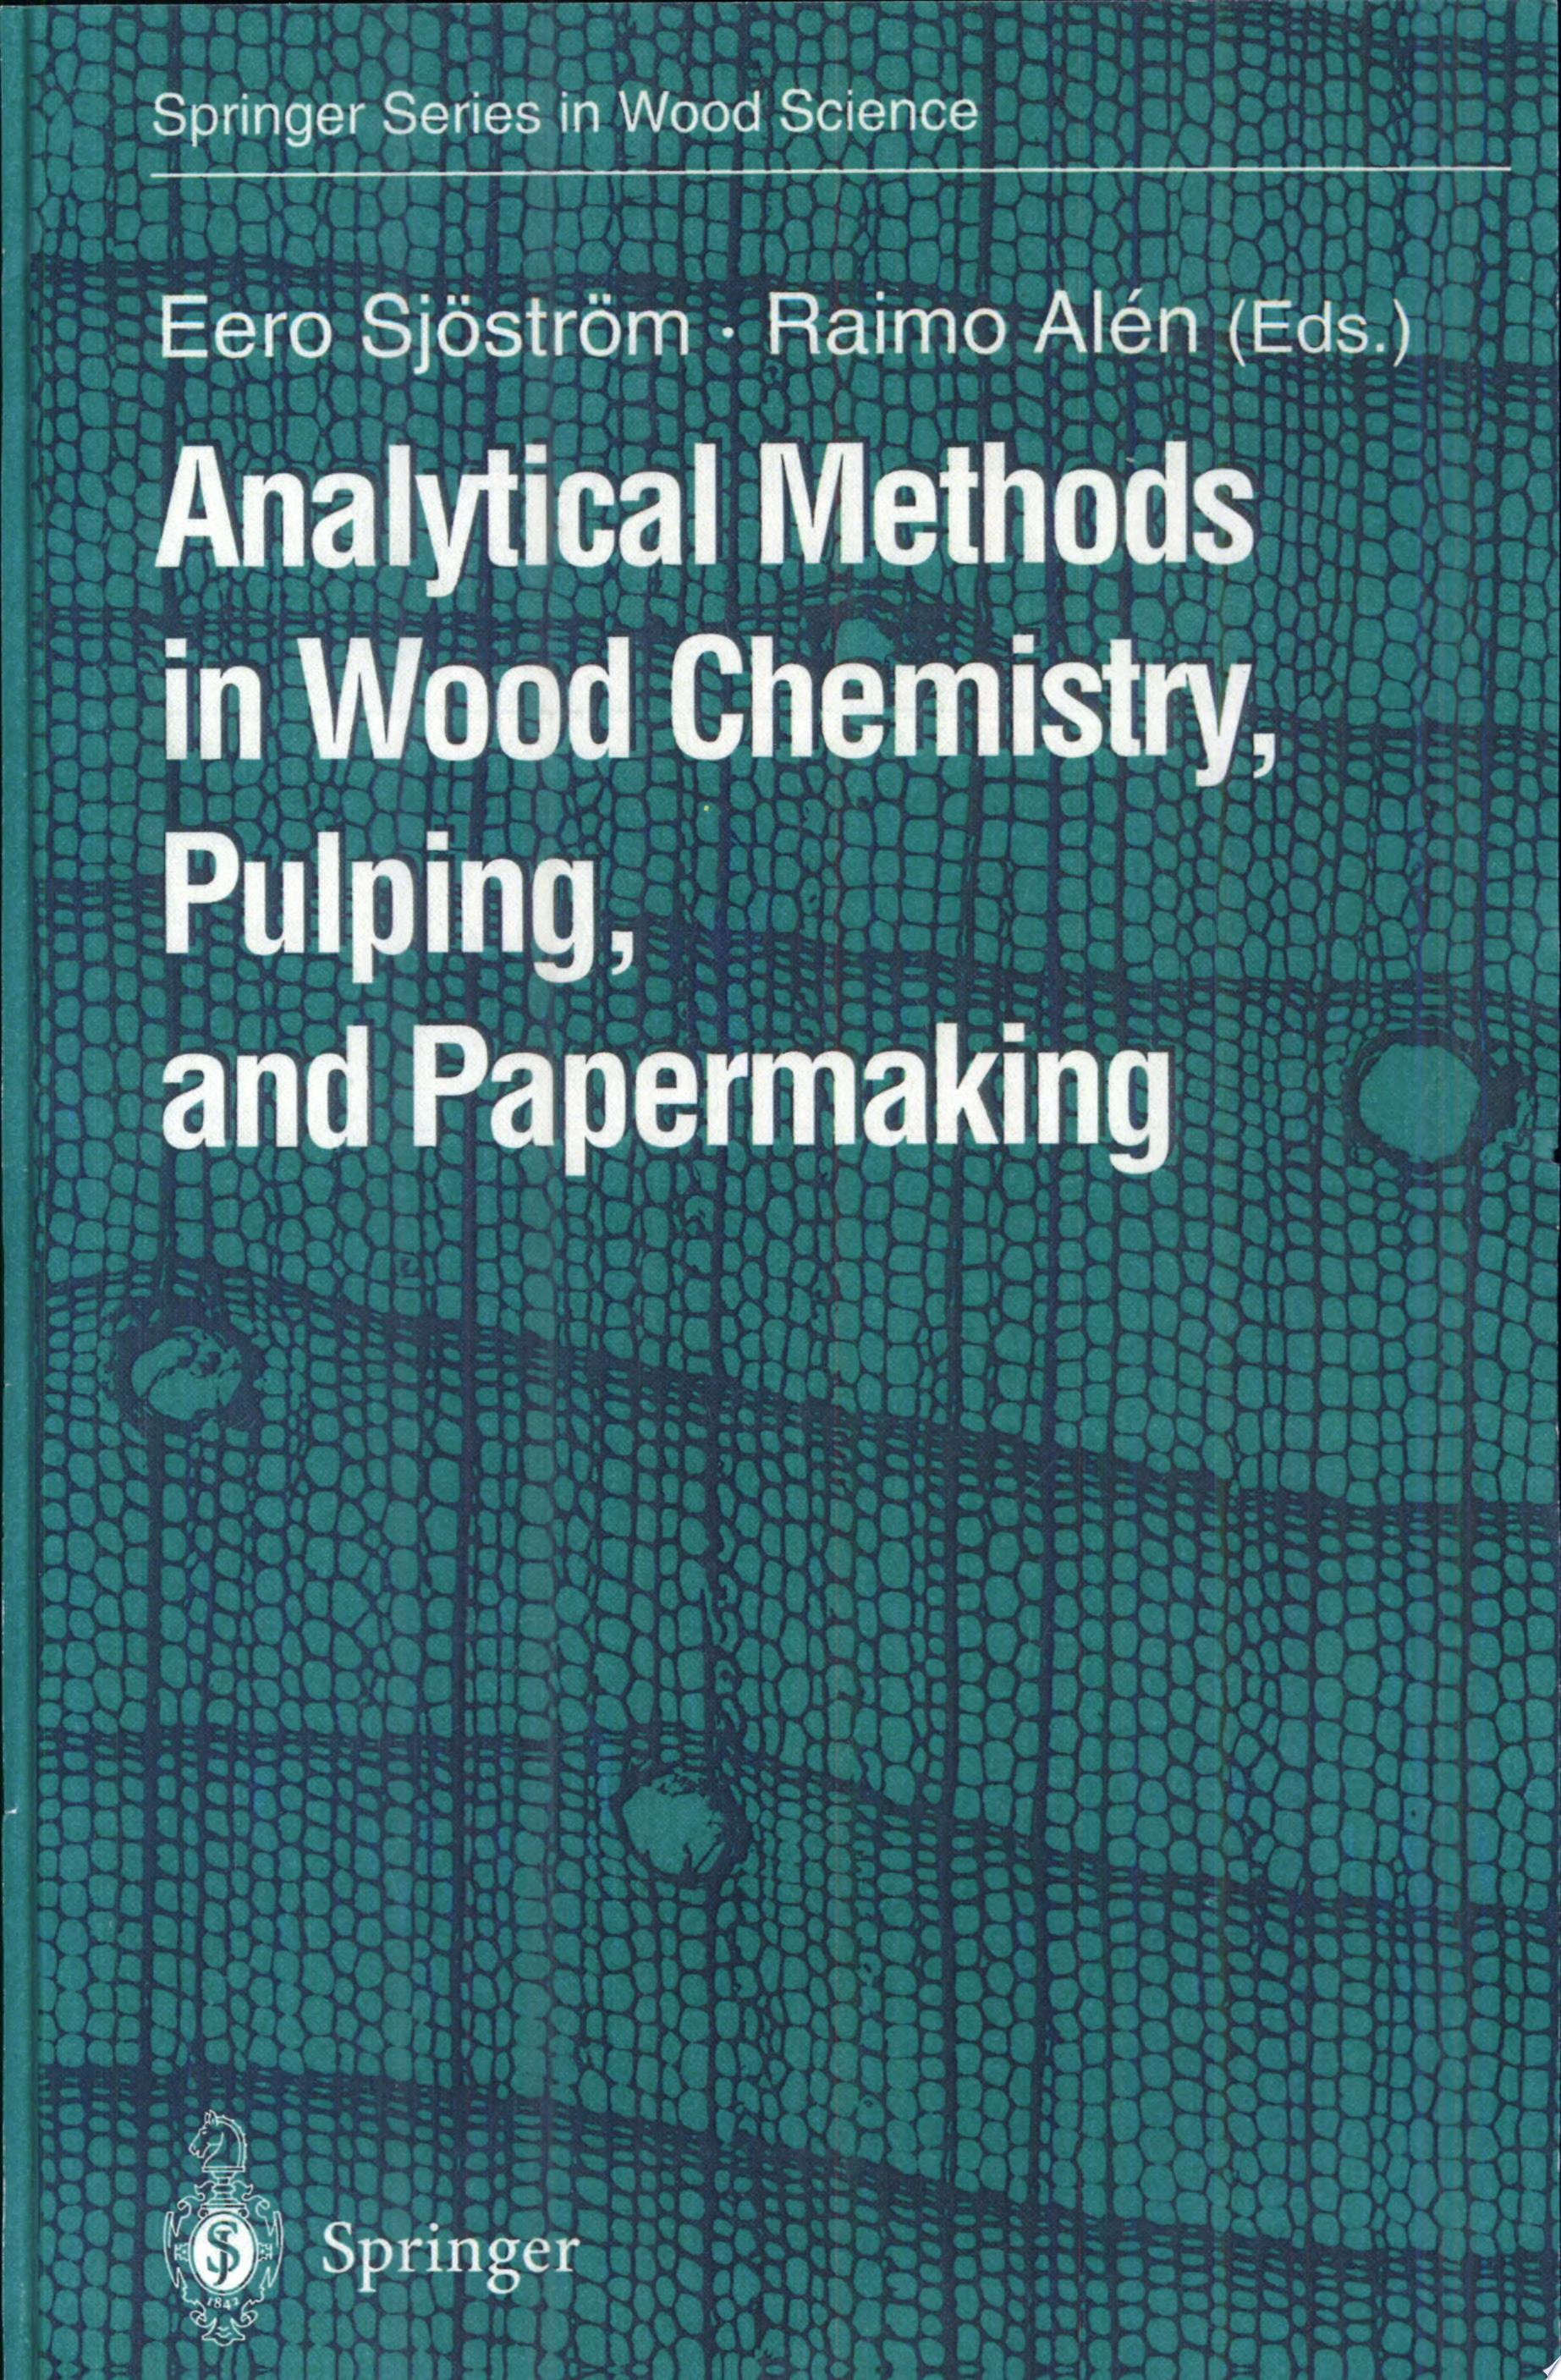 Analytical Methods in Wood Chemistry  Pulping  and Papermaking